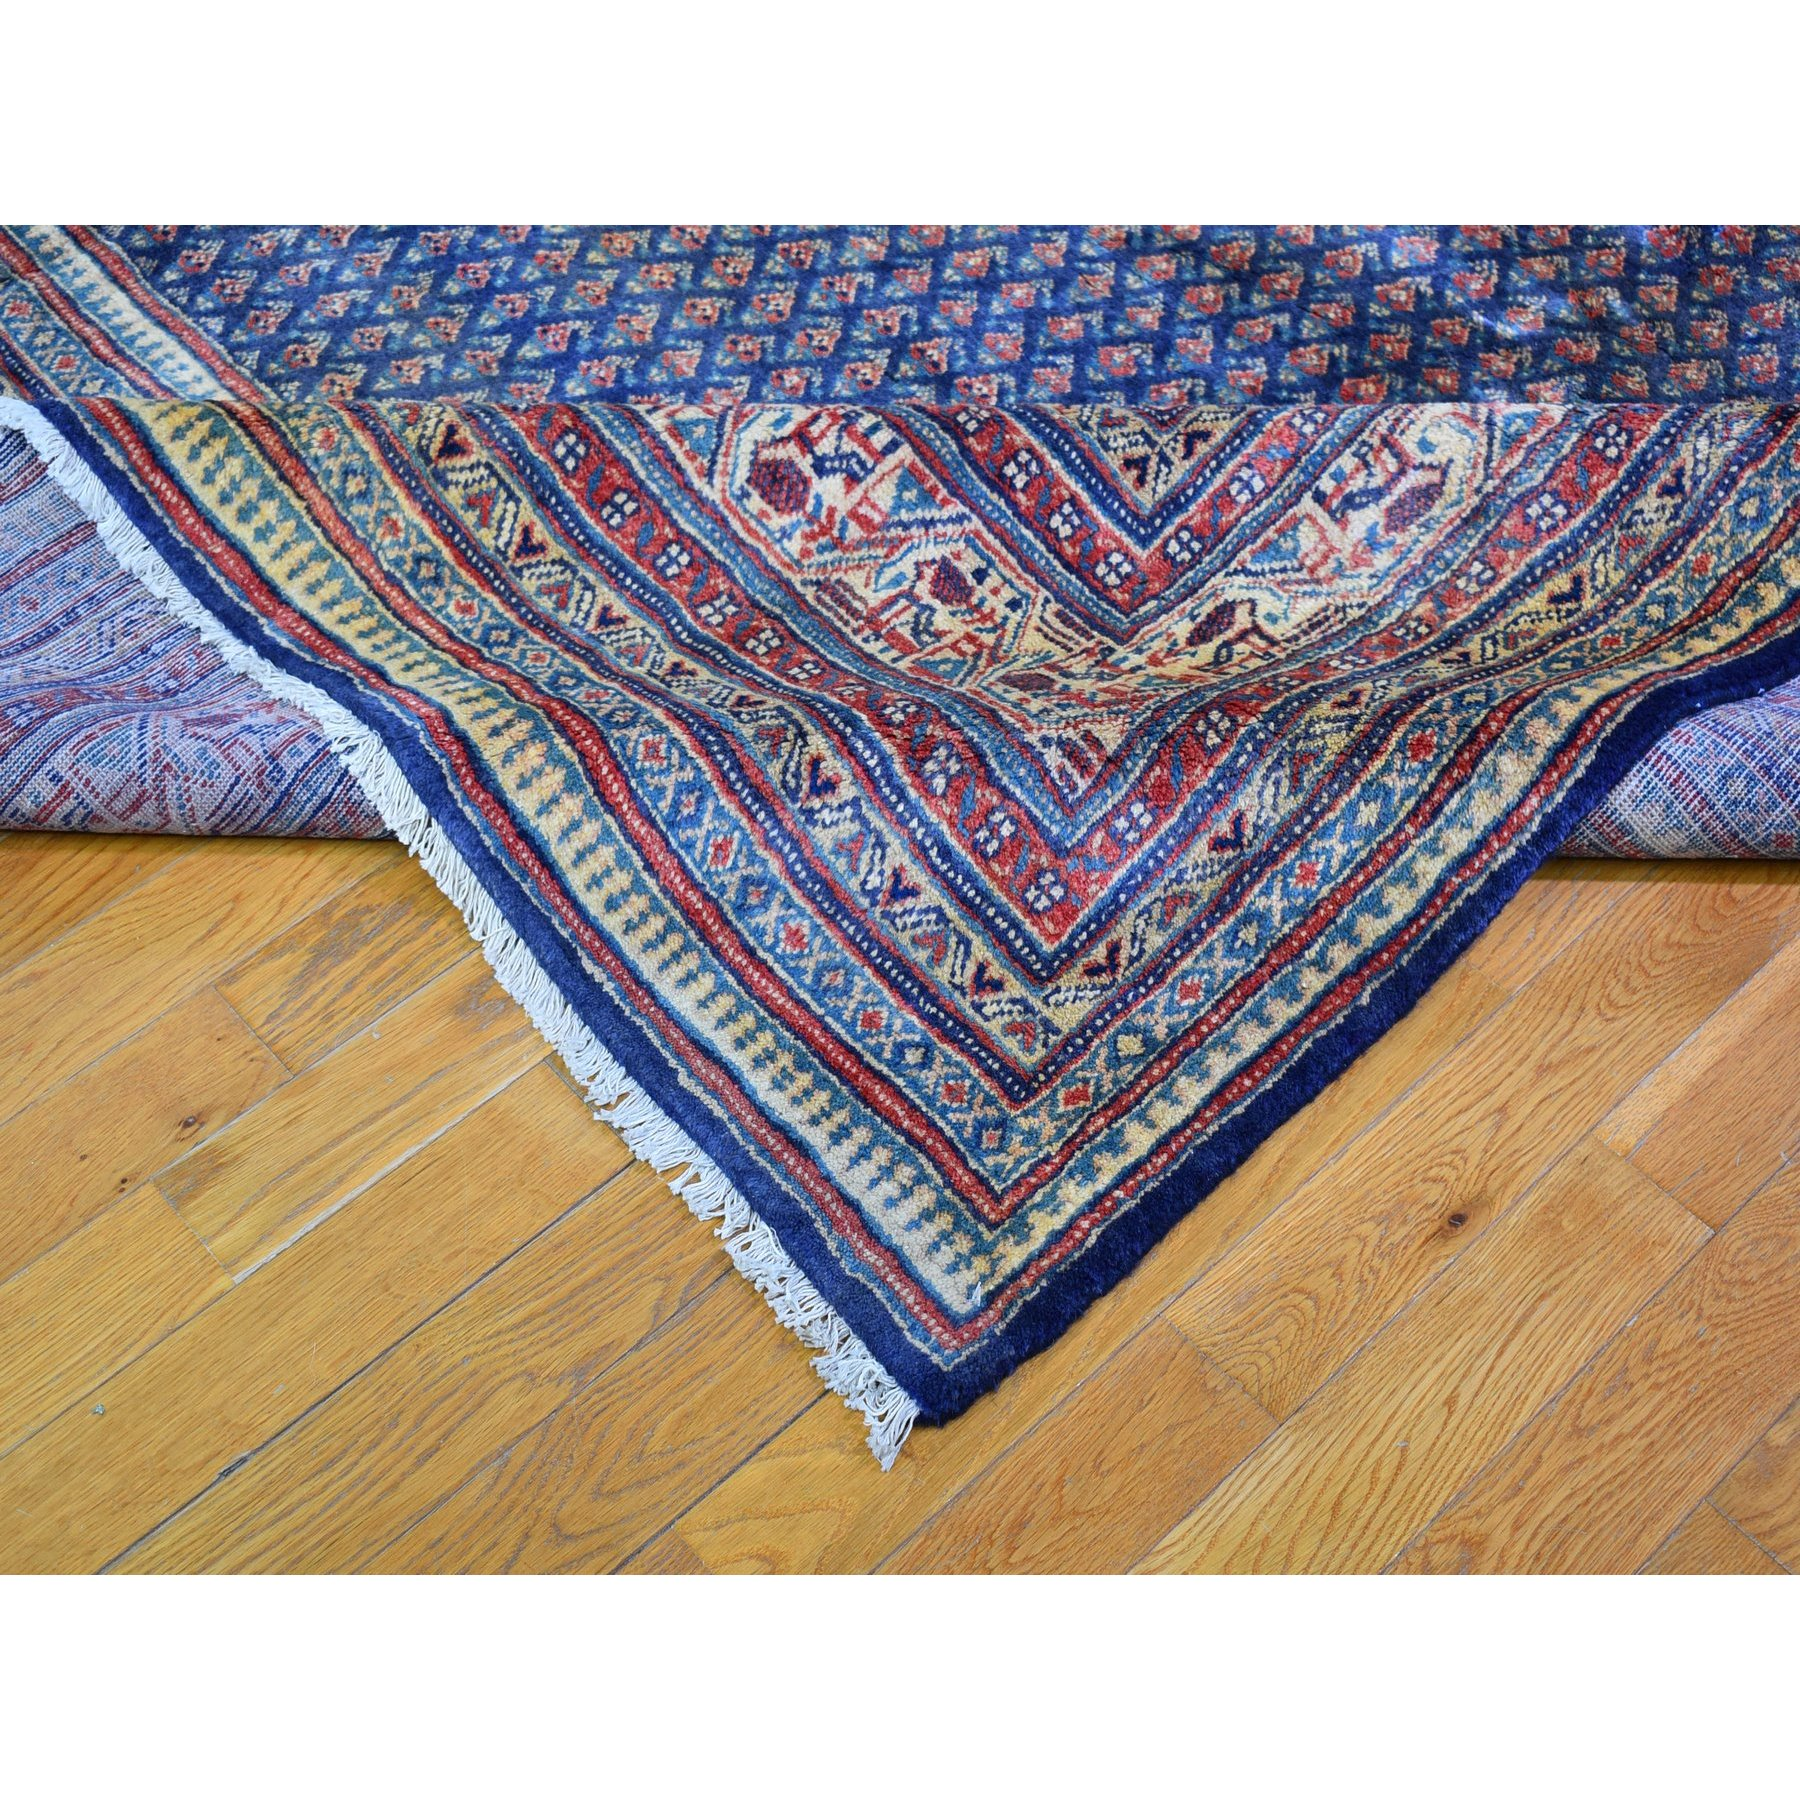 """9'9""""x13' Vintage Persian Serab with Nice Navy Blue Shades All Over Small Repetitive Design Pure Wool Hand Knotted Oriental Rug"""